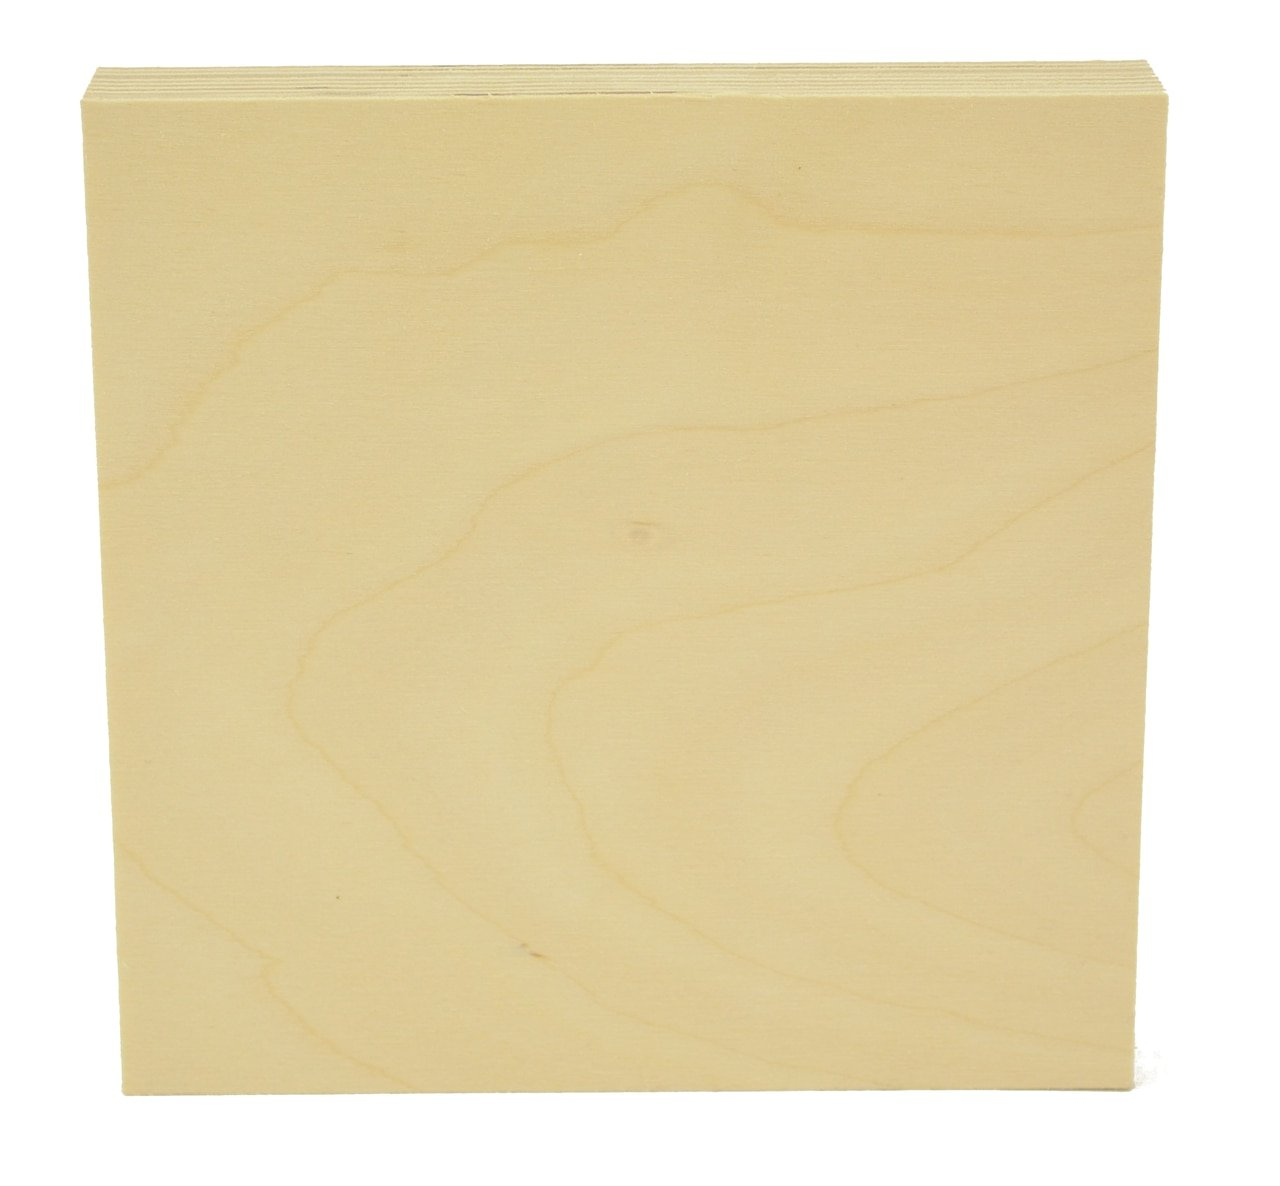 Woodcrafter 3/4'' Thick Baltic Birch Plywood Square 22 Inch by Woodcrafter.com